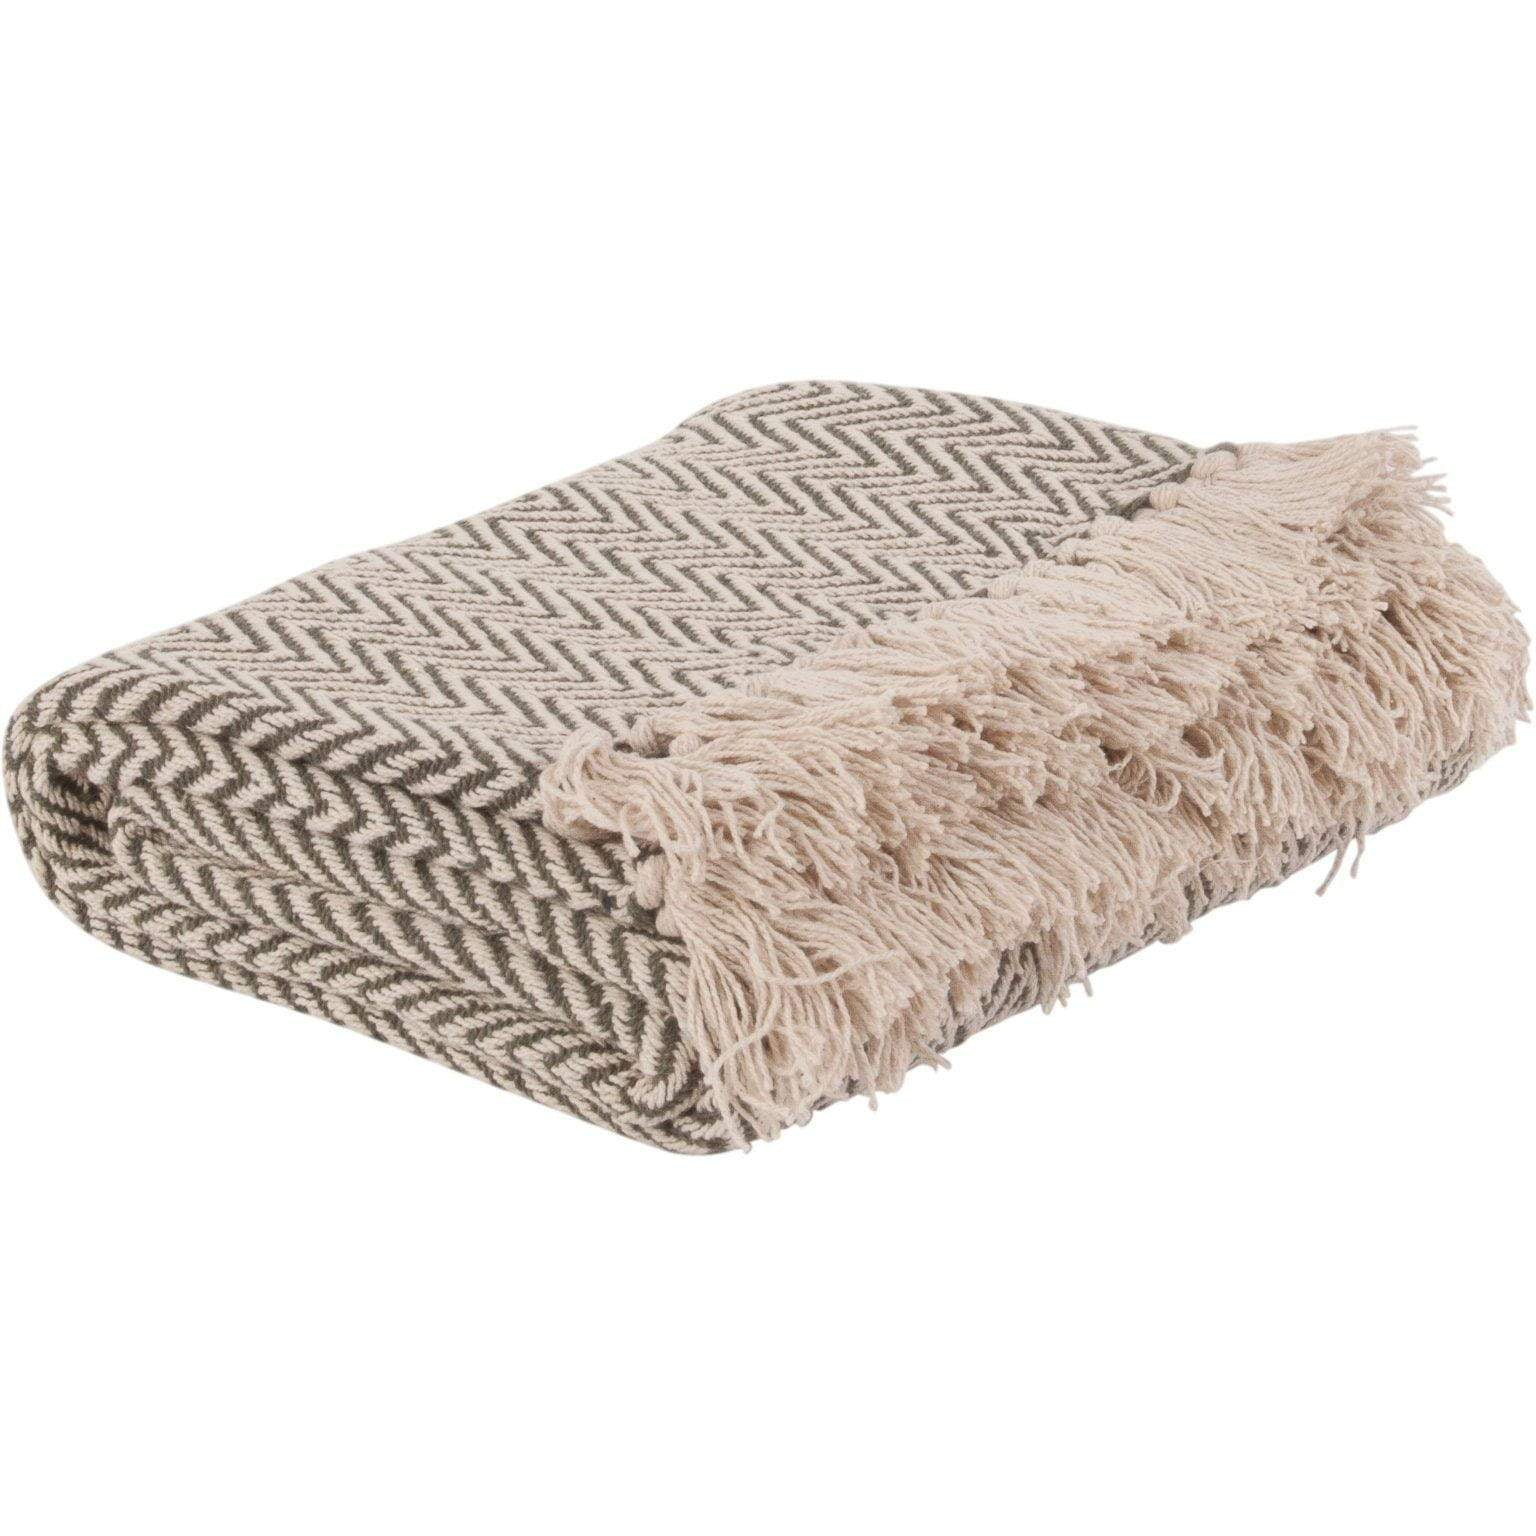 Ian Snow Ltd Dusky Green Cotton Herringbone Throw